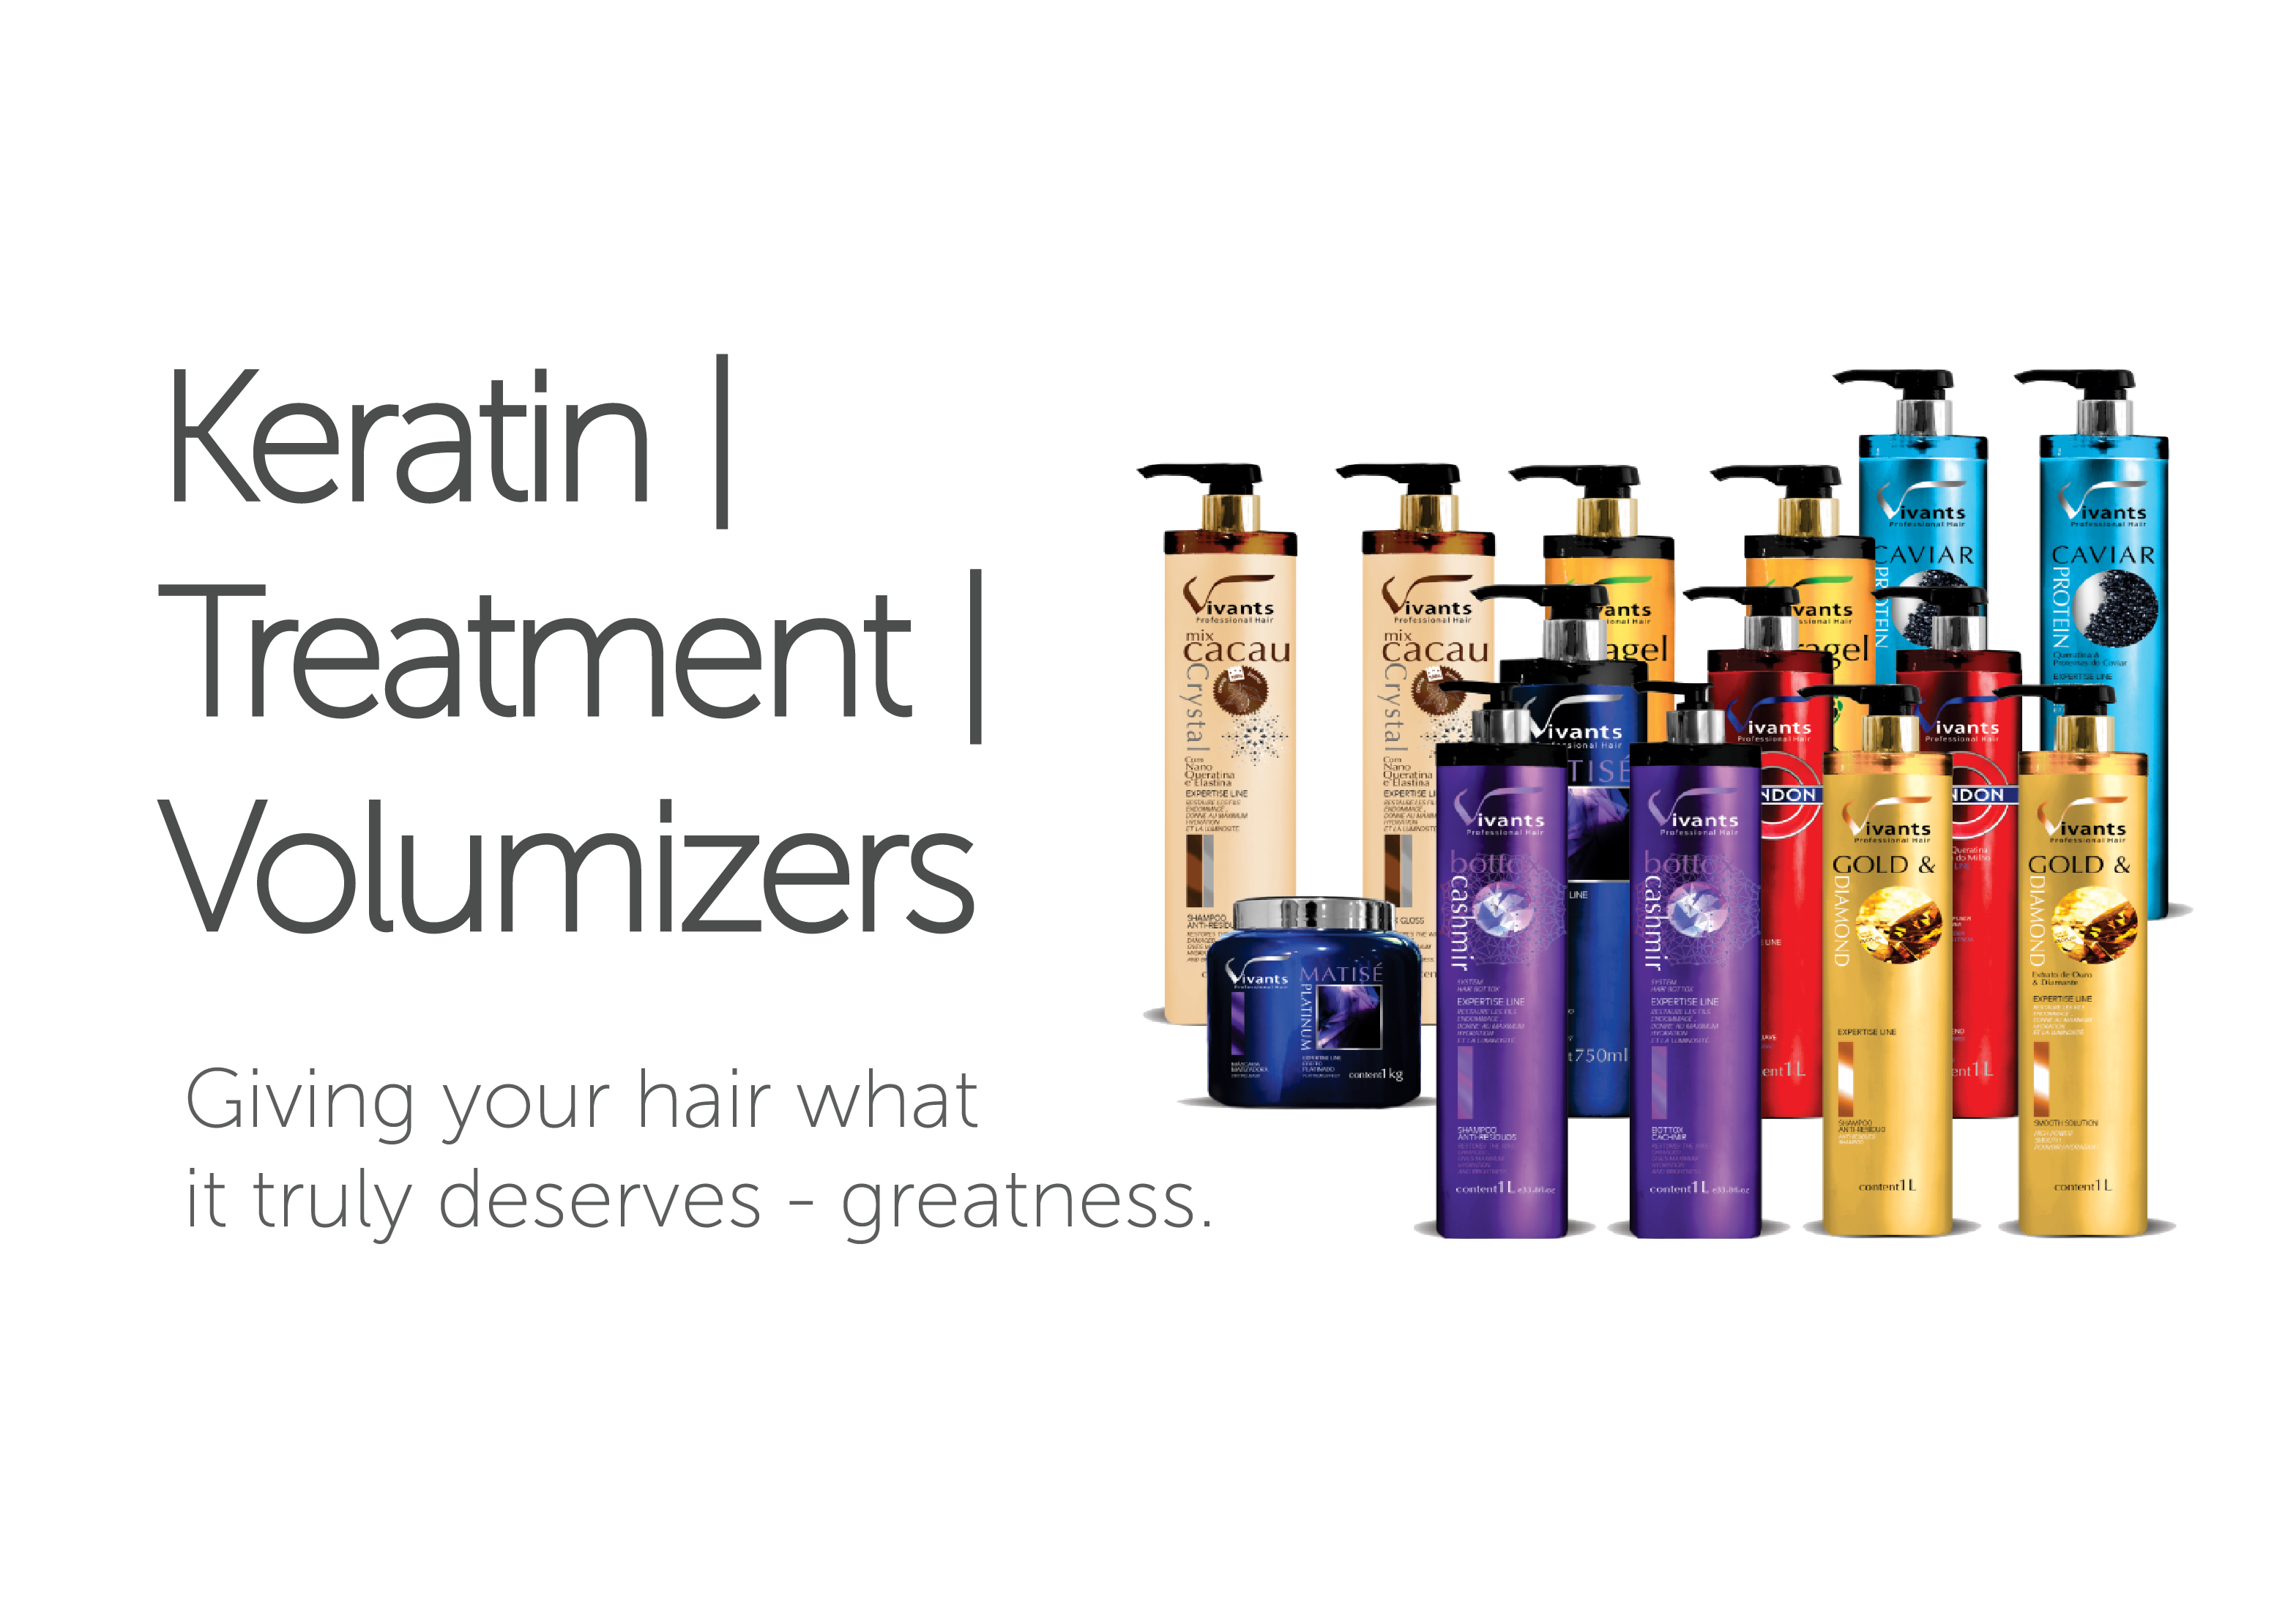 Keratin | Treatment | Volumizers - Giving your hair what it truly deserves - greatness.